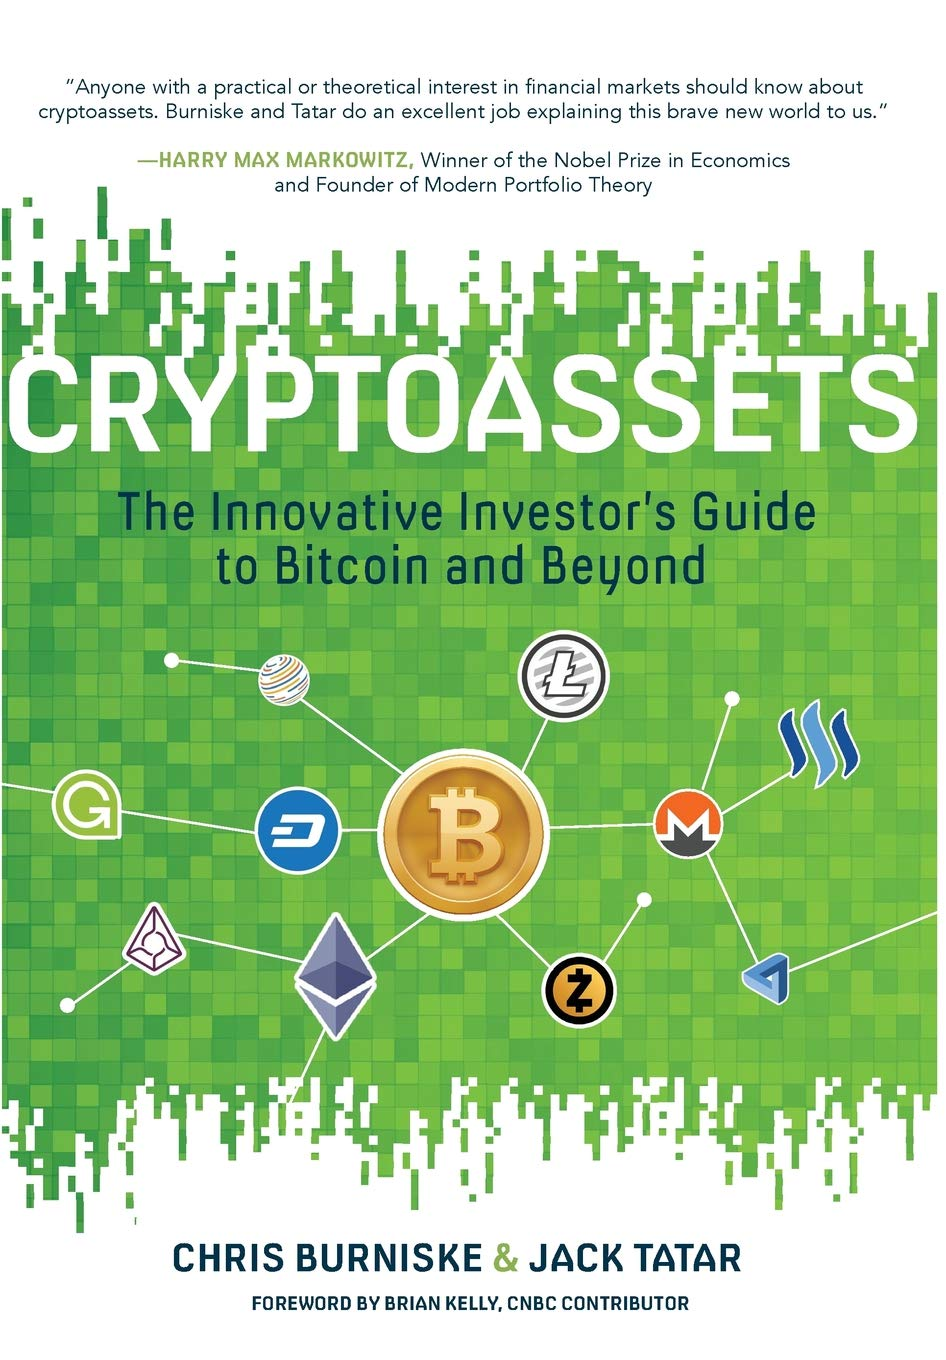 Cryptoassets: The Innovative Investor's Guide to Bitcoin and Beyond  (Inglés) Pasta dura – 19 oct 2017